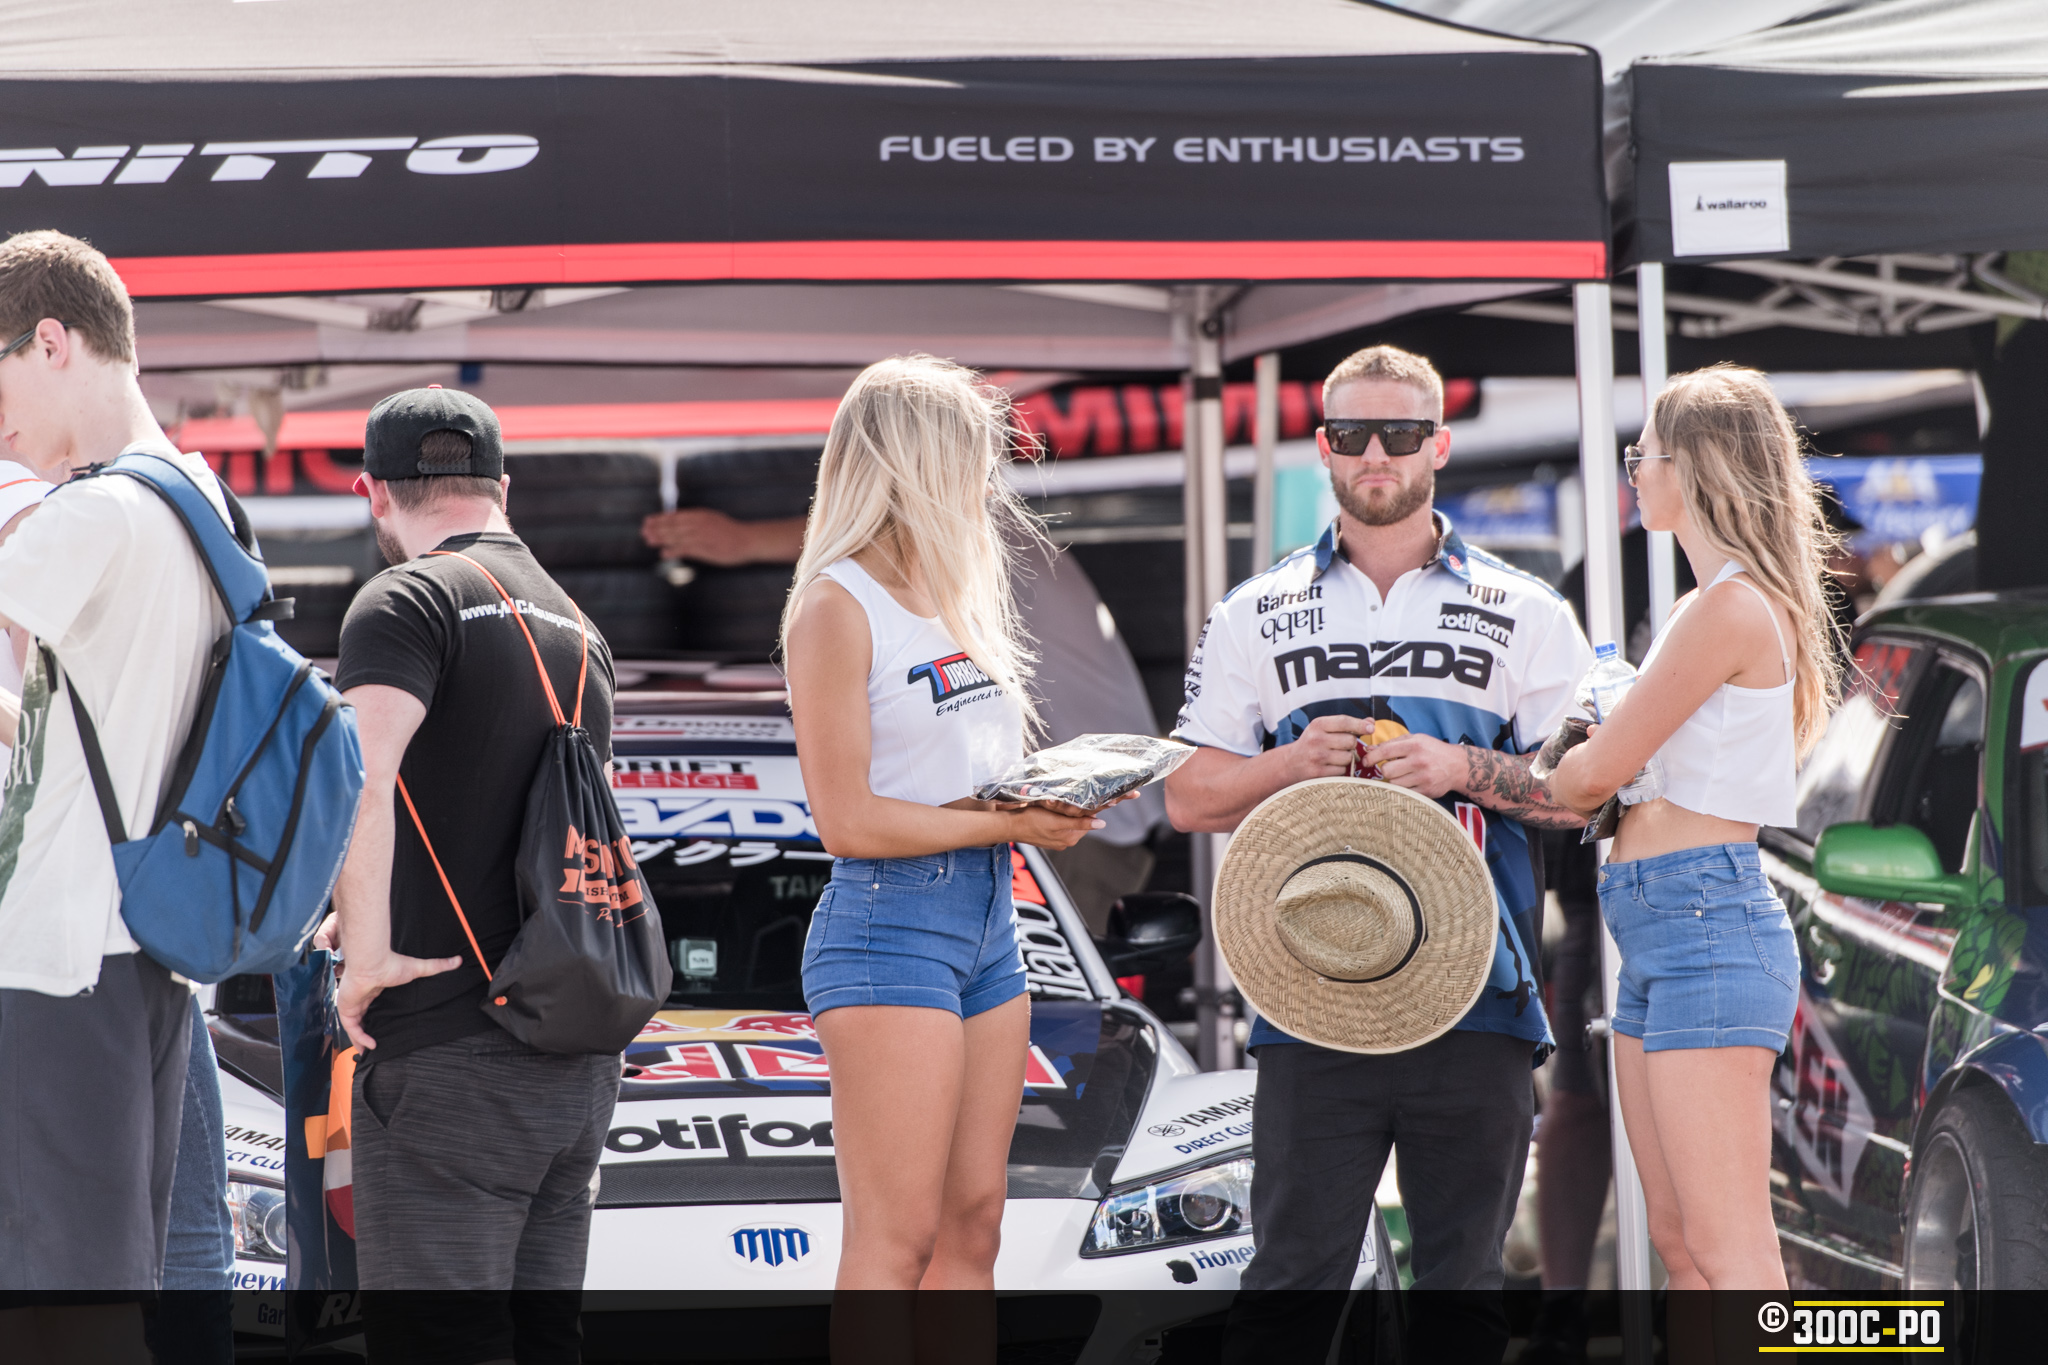 2017-10-13 - WTAC 2017 Day 01 057